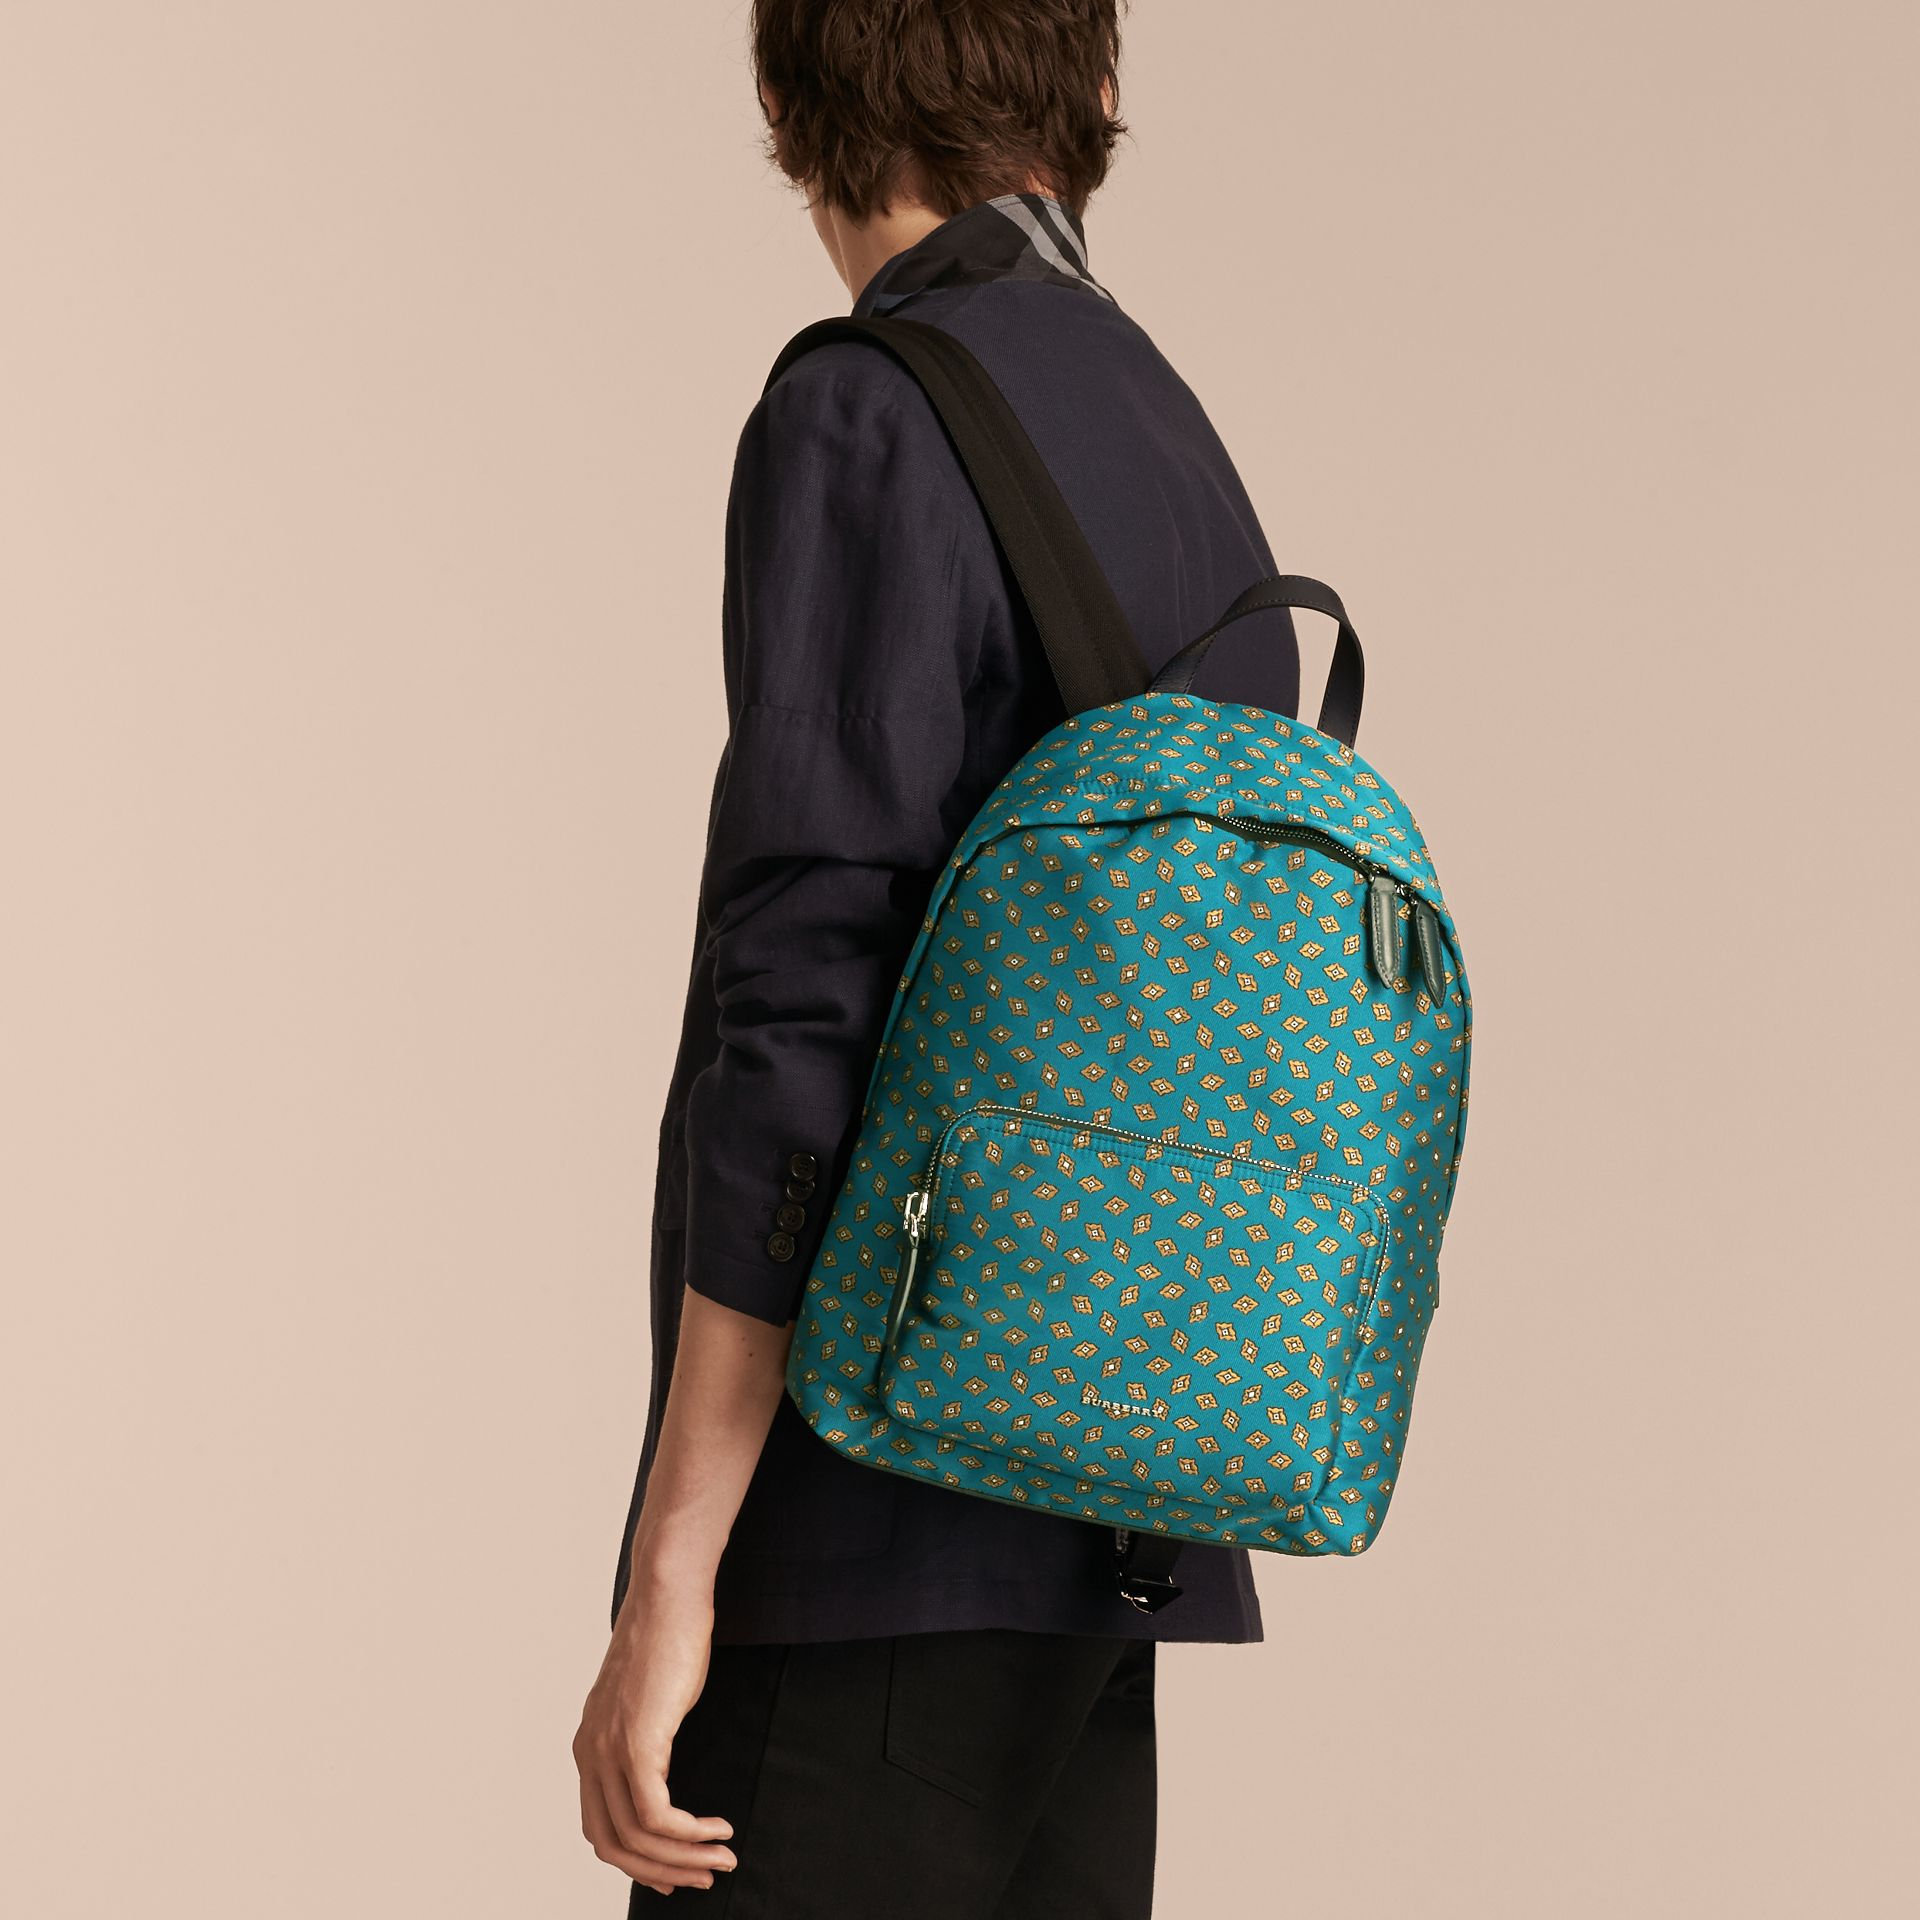 Dark teal Leather Trim Abstract Jacquard Backpack Dark Teal - gallery image 3